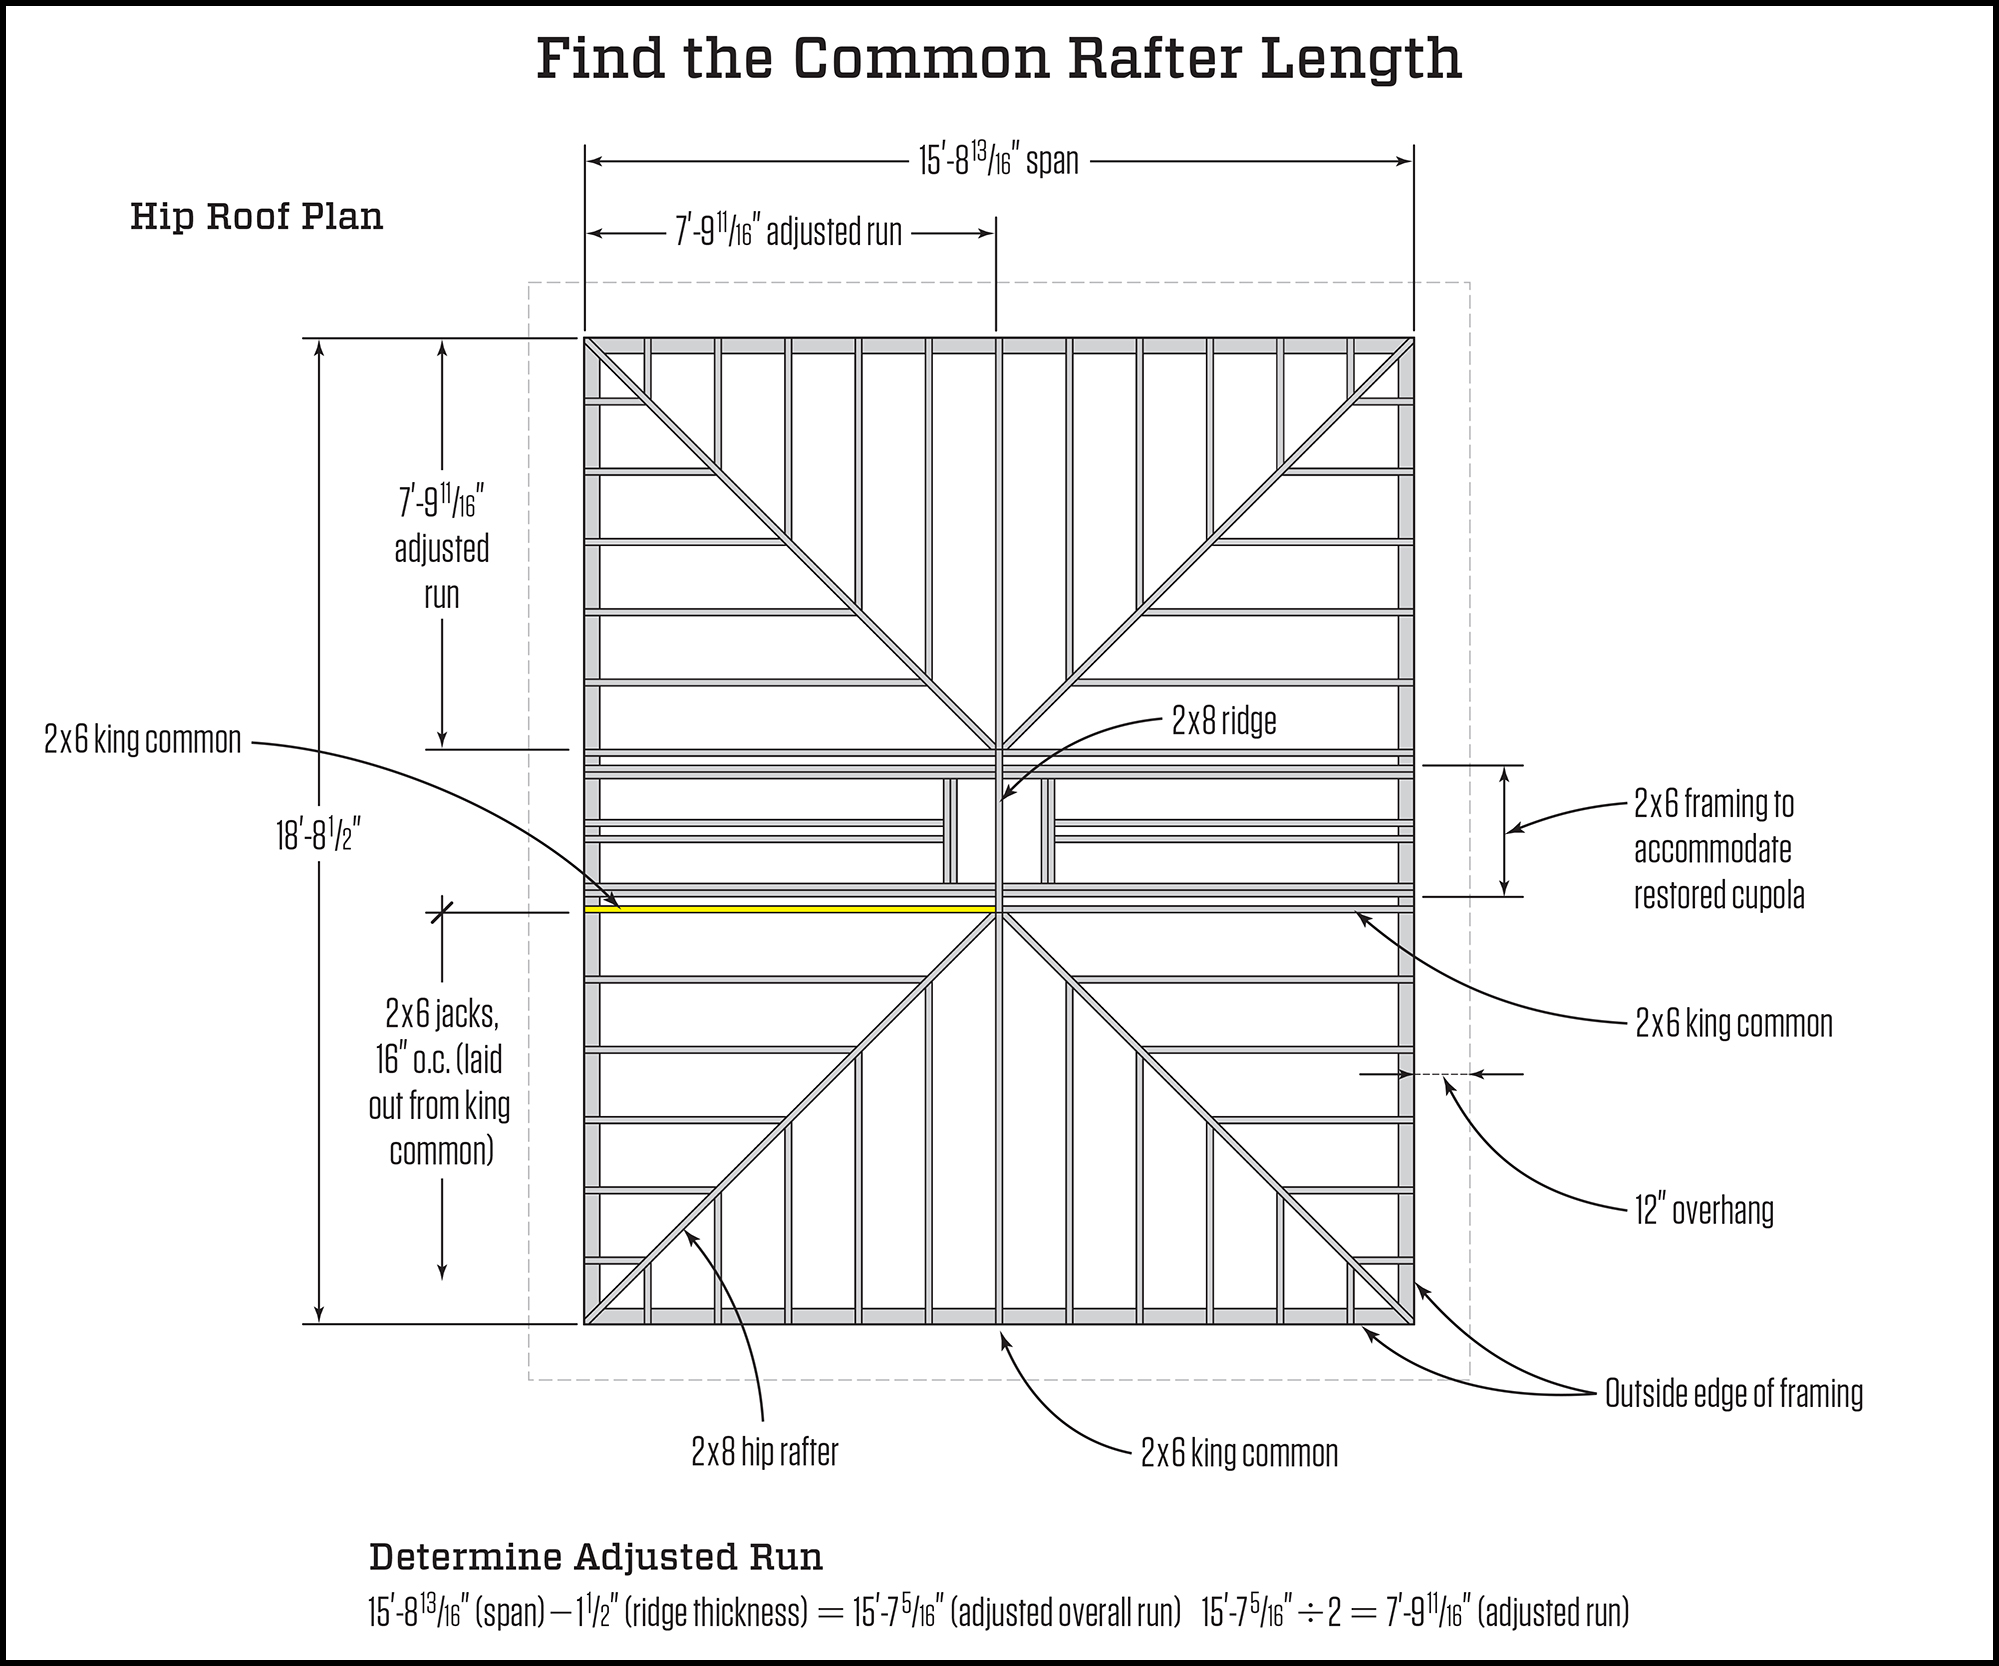 Click On The Number Of Treads Increase Or Decrease And Diagram Fast Jack Rafter Layout Cutting Jlc Online Framing Structure At Birdsmouth I Supplied 3 Inch Seat For Tail A 12 Overhang With 2 High Subfascia Plumb Cut Which Dictated